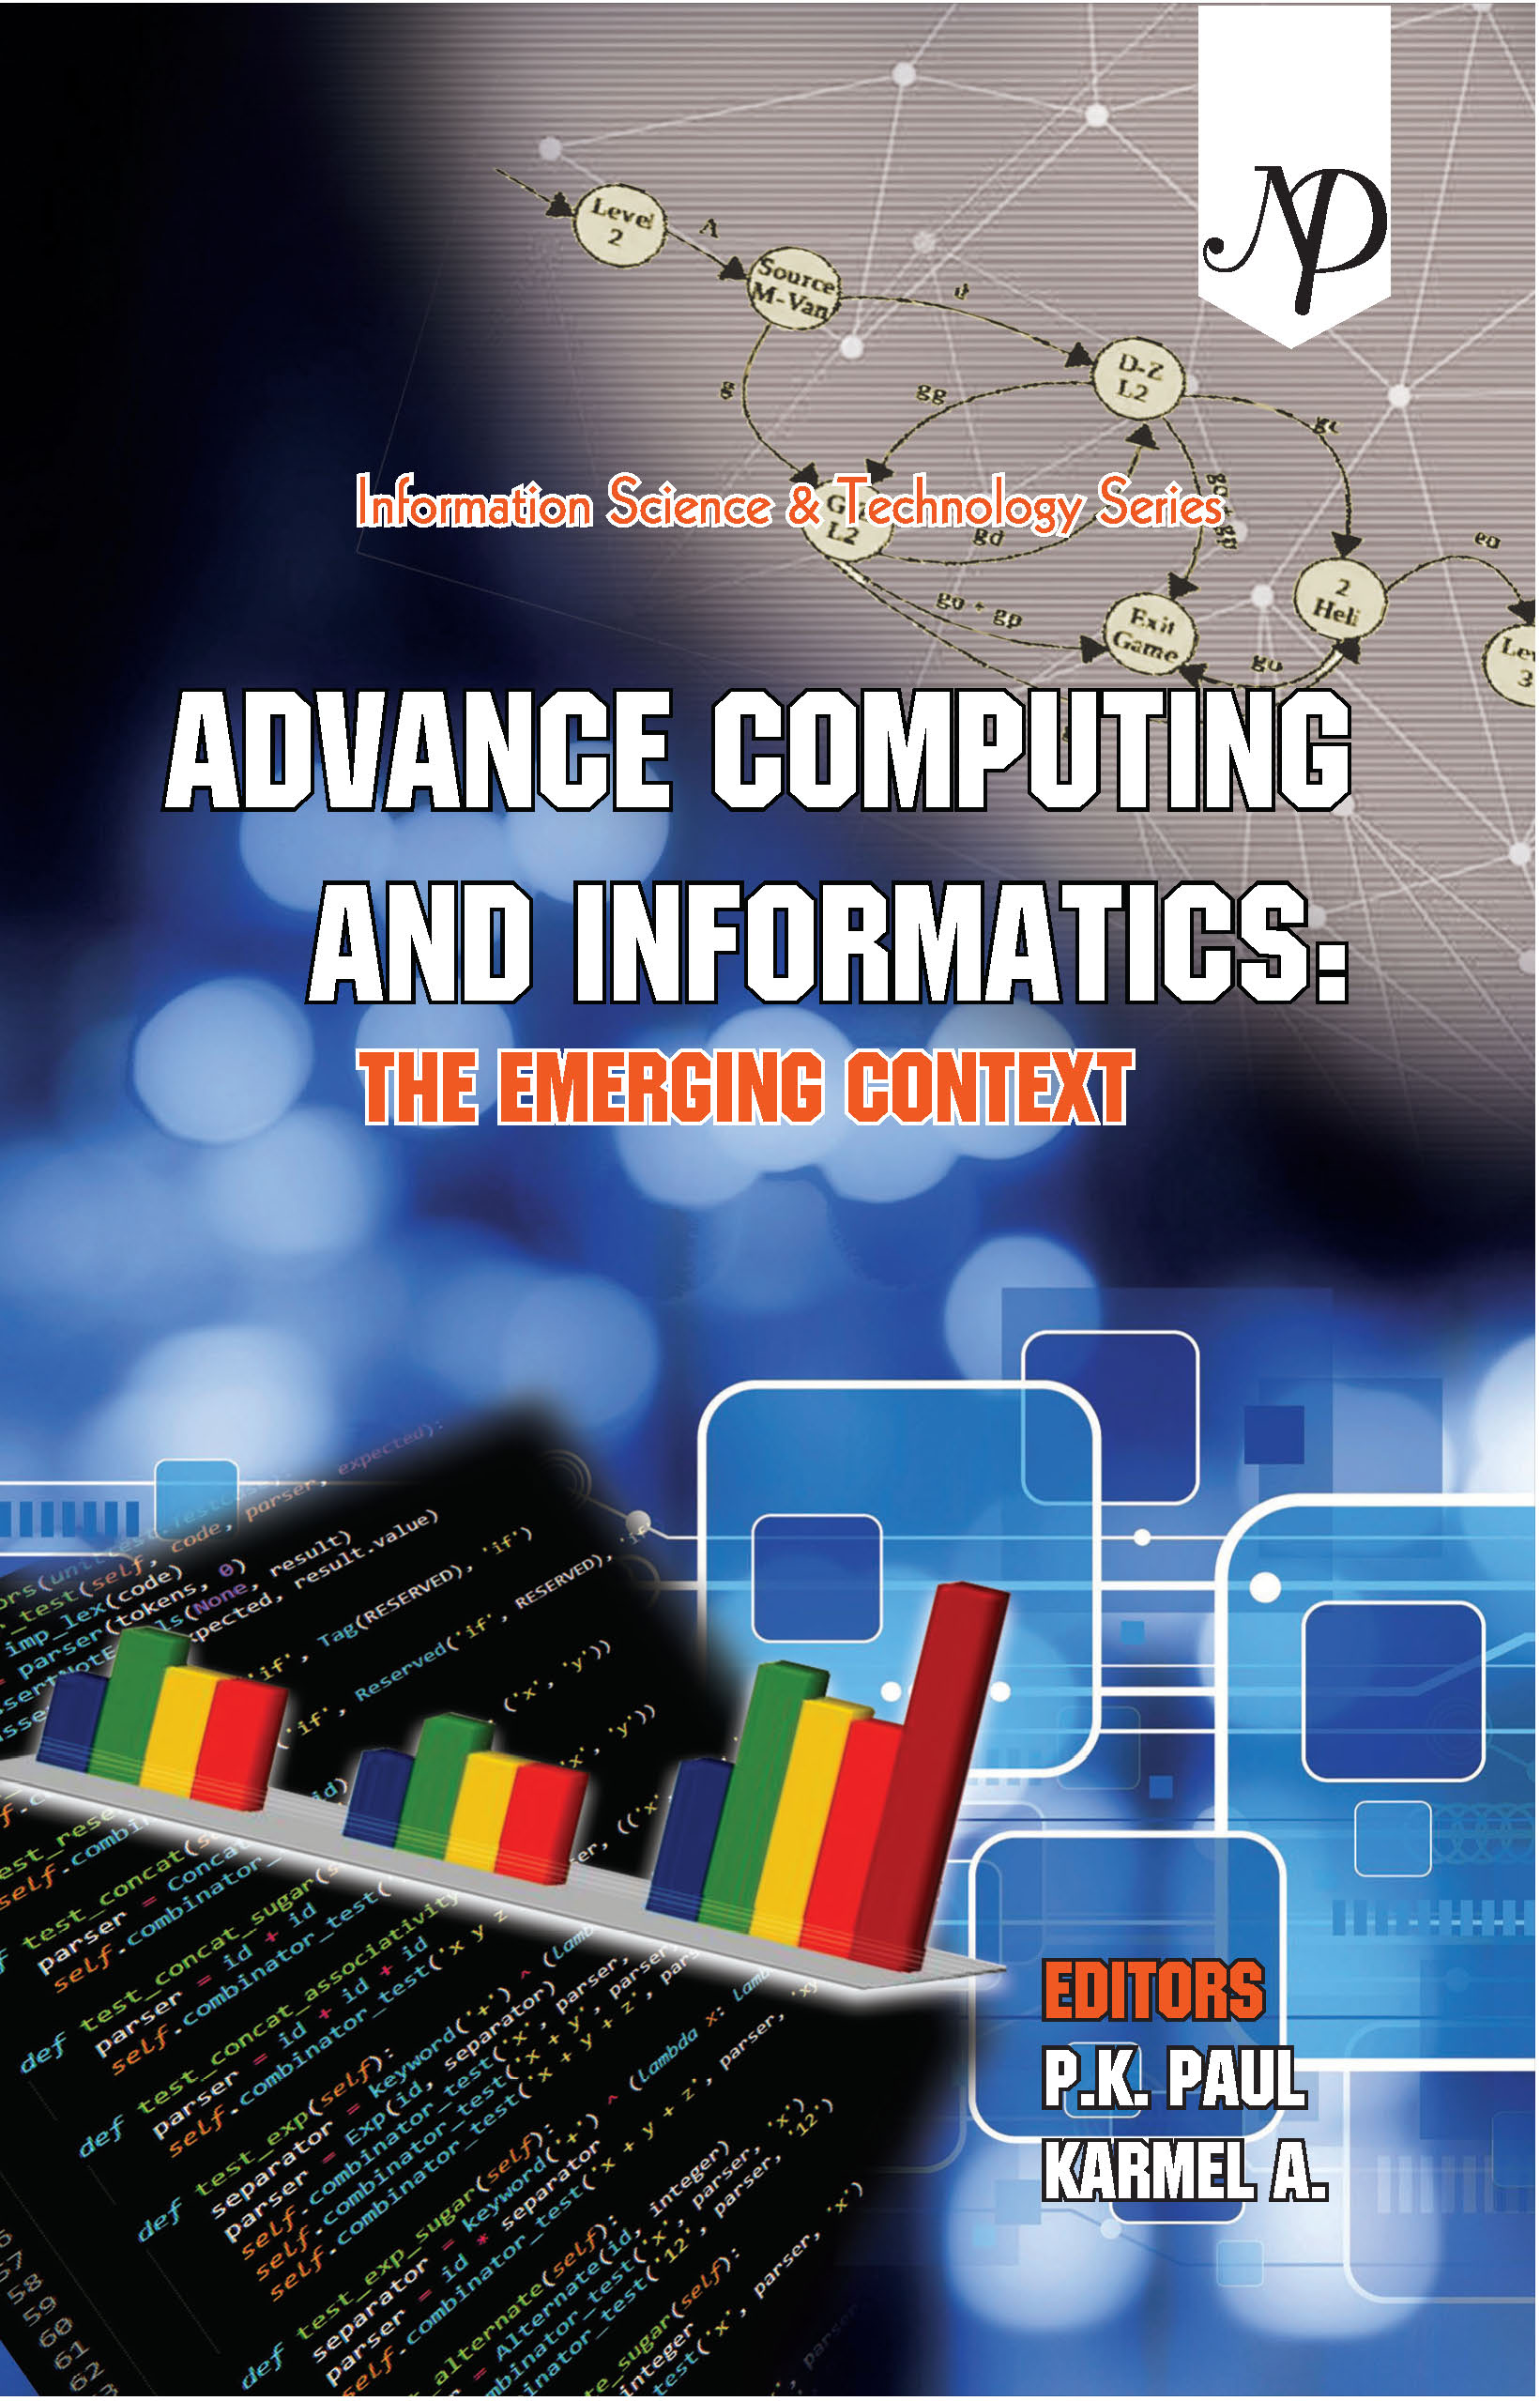 Advance Computing Informatics Cover.jpg